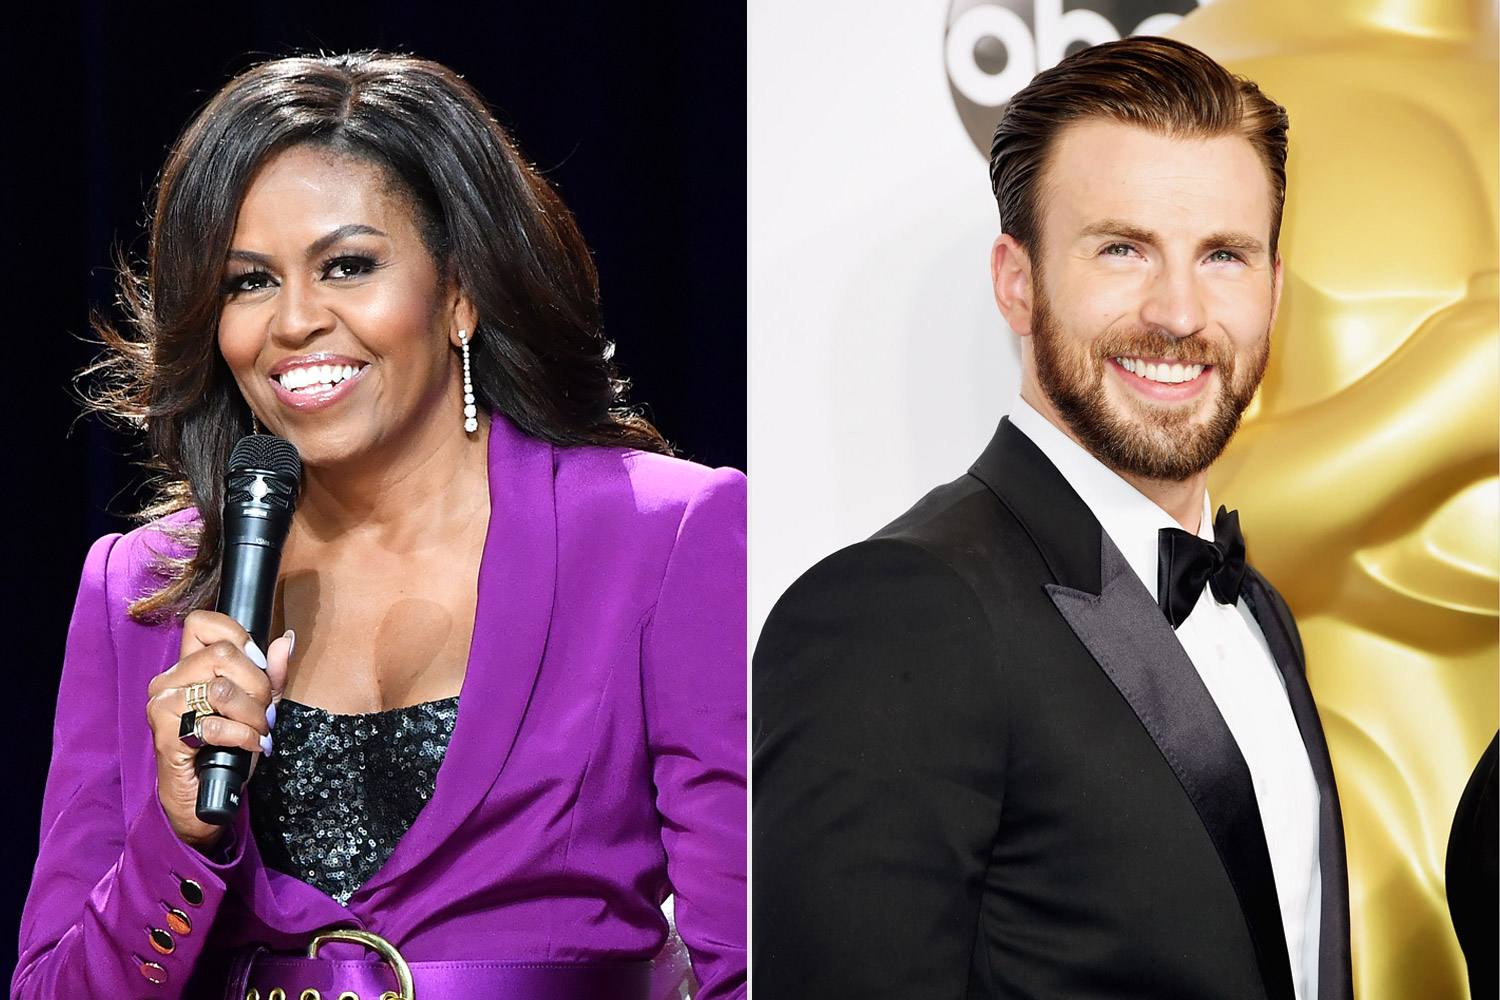 Chris evans, michelle obama